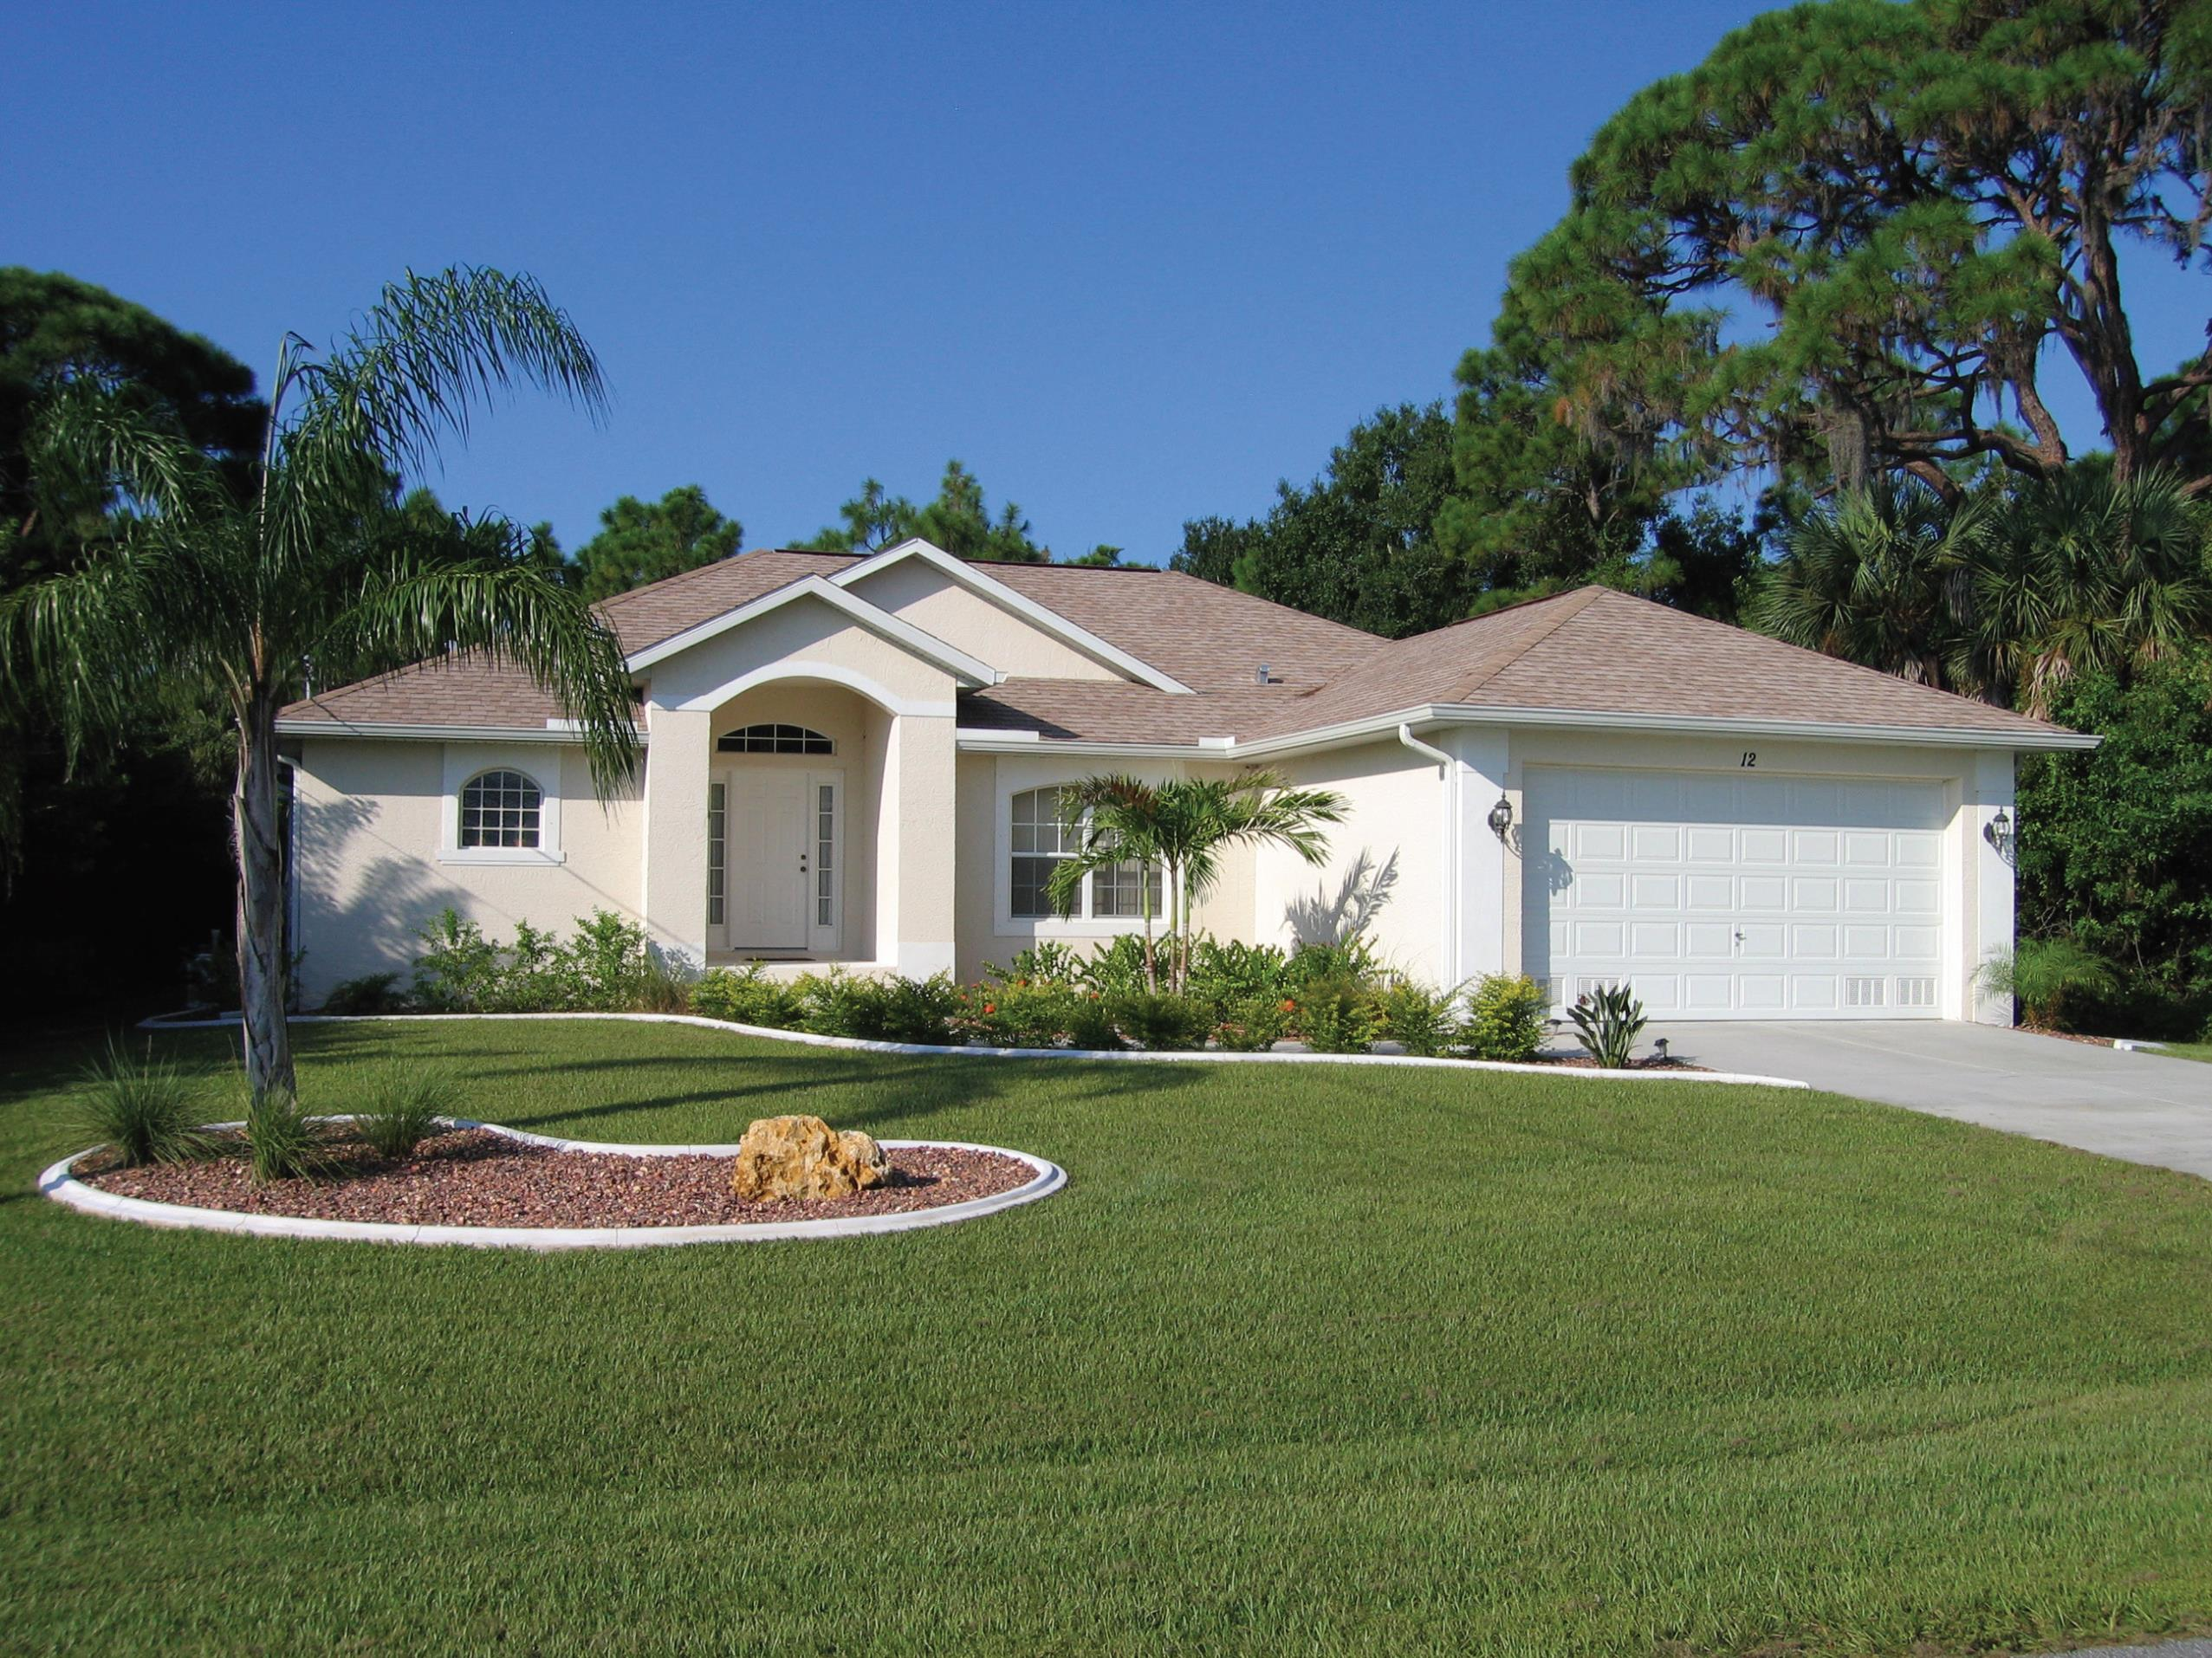 Ex show home for sale Florida Gulf Coast